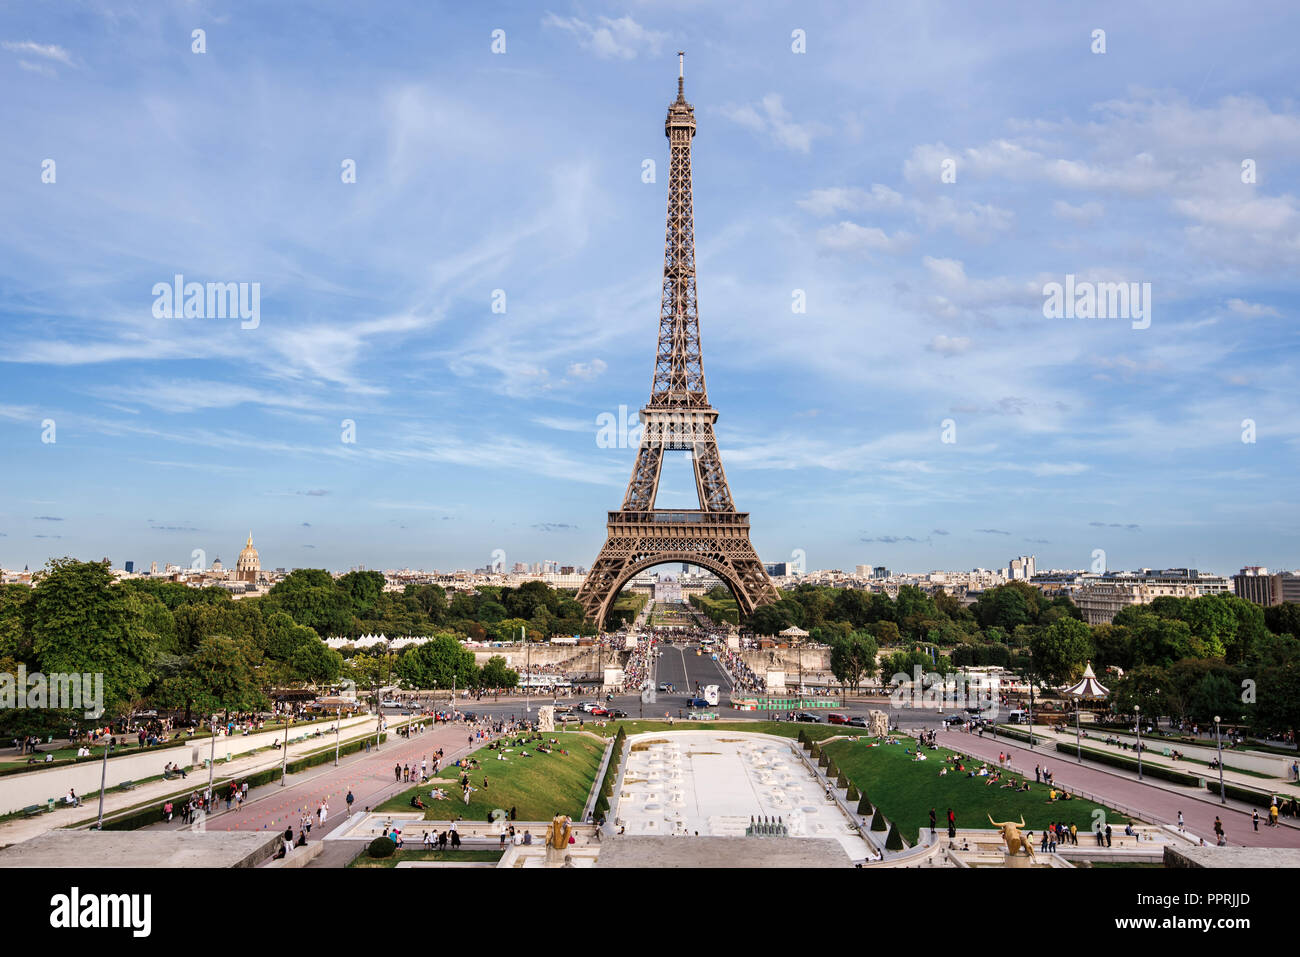 View of Eiffel Tower from Trocadero - Stock Image